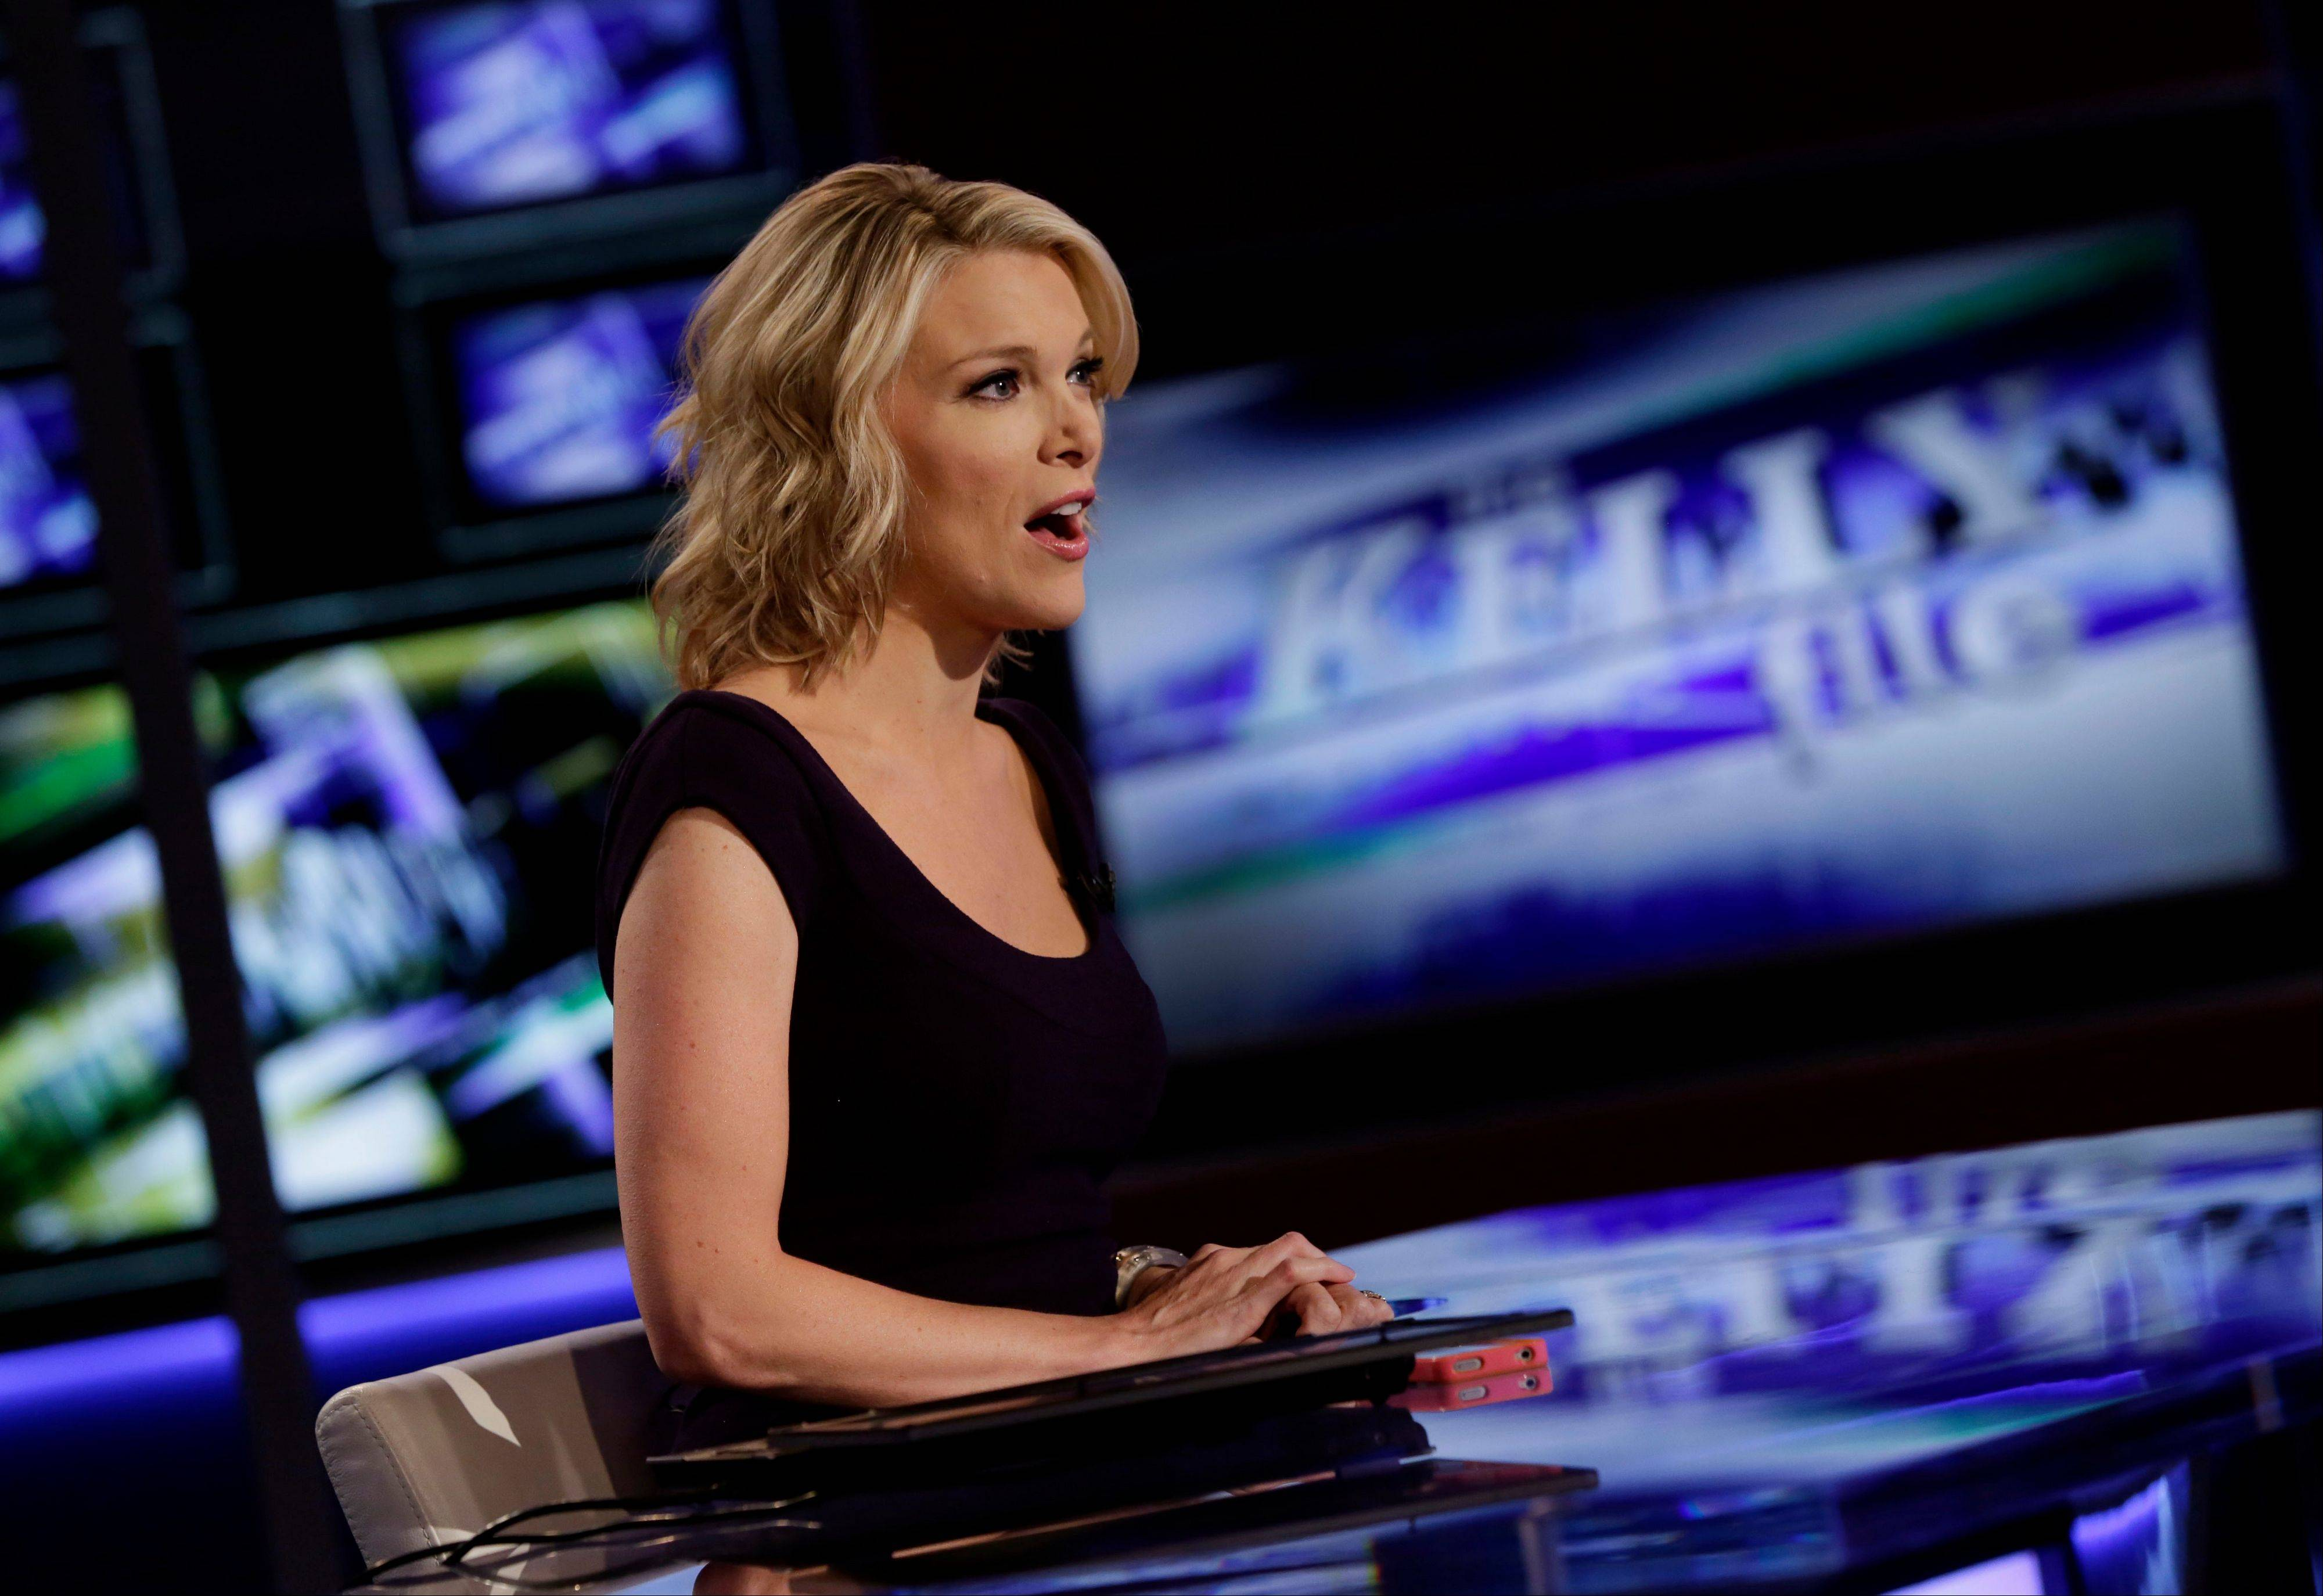 Megyn Kelly, host of Fox News Channel�s �The Kelly Files,� rehearses for the debut of her new show, which premieres Monday. Her program is the linchpin to the first overhaul of Fox�s prime-time lineup since 2002, or about a century in television time.